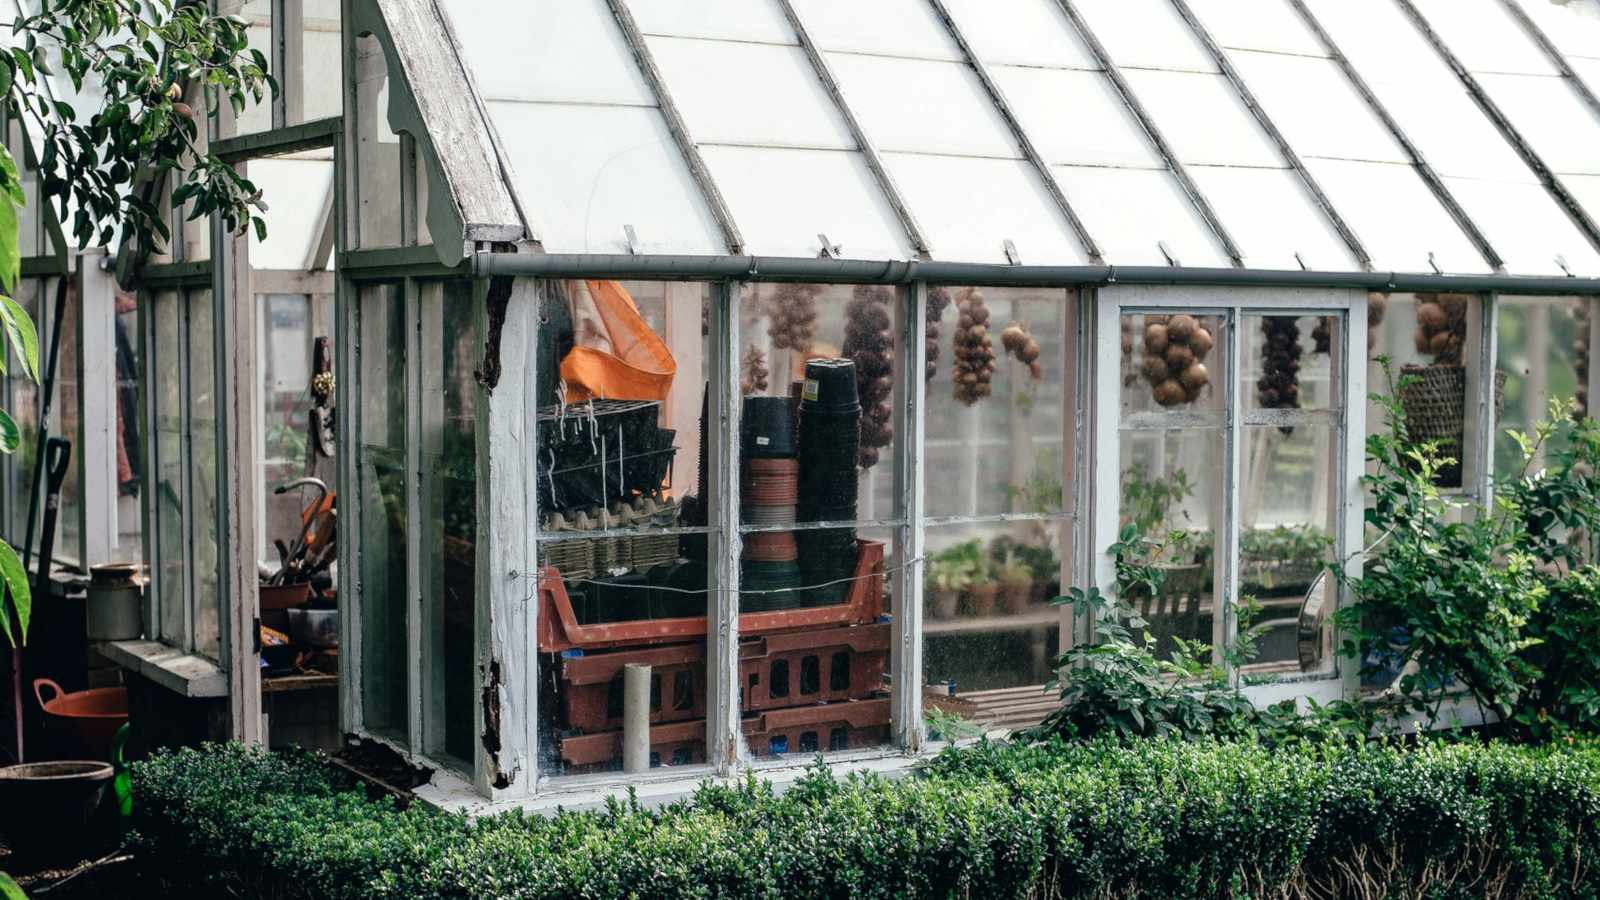 How to garden sustainably